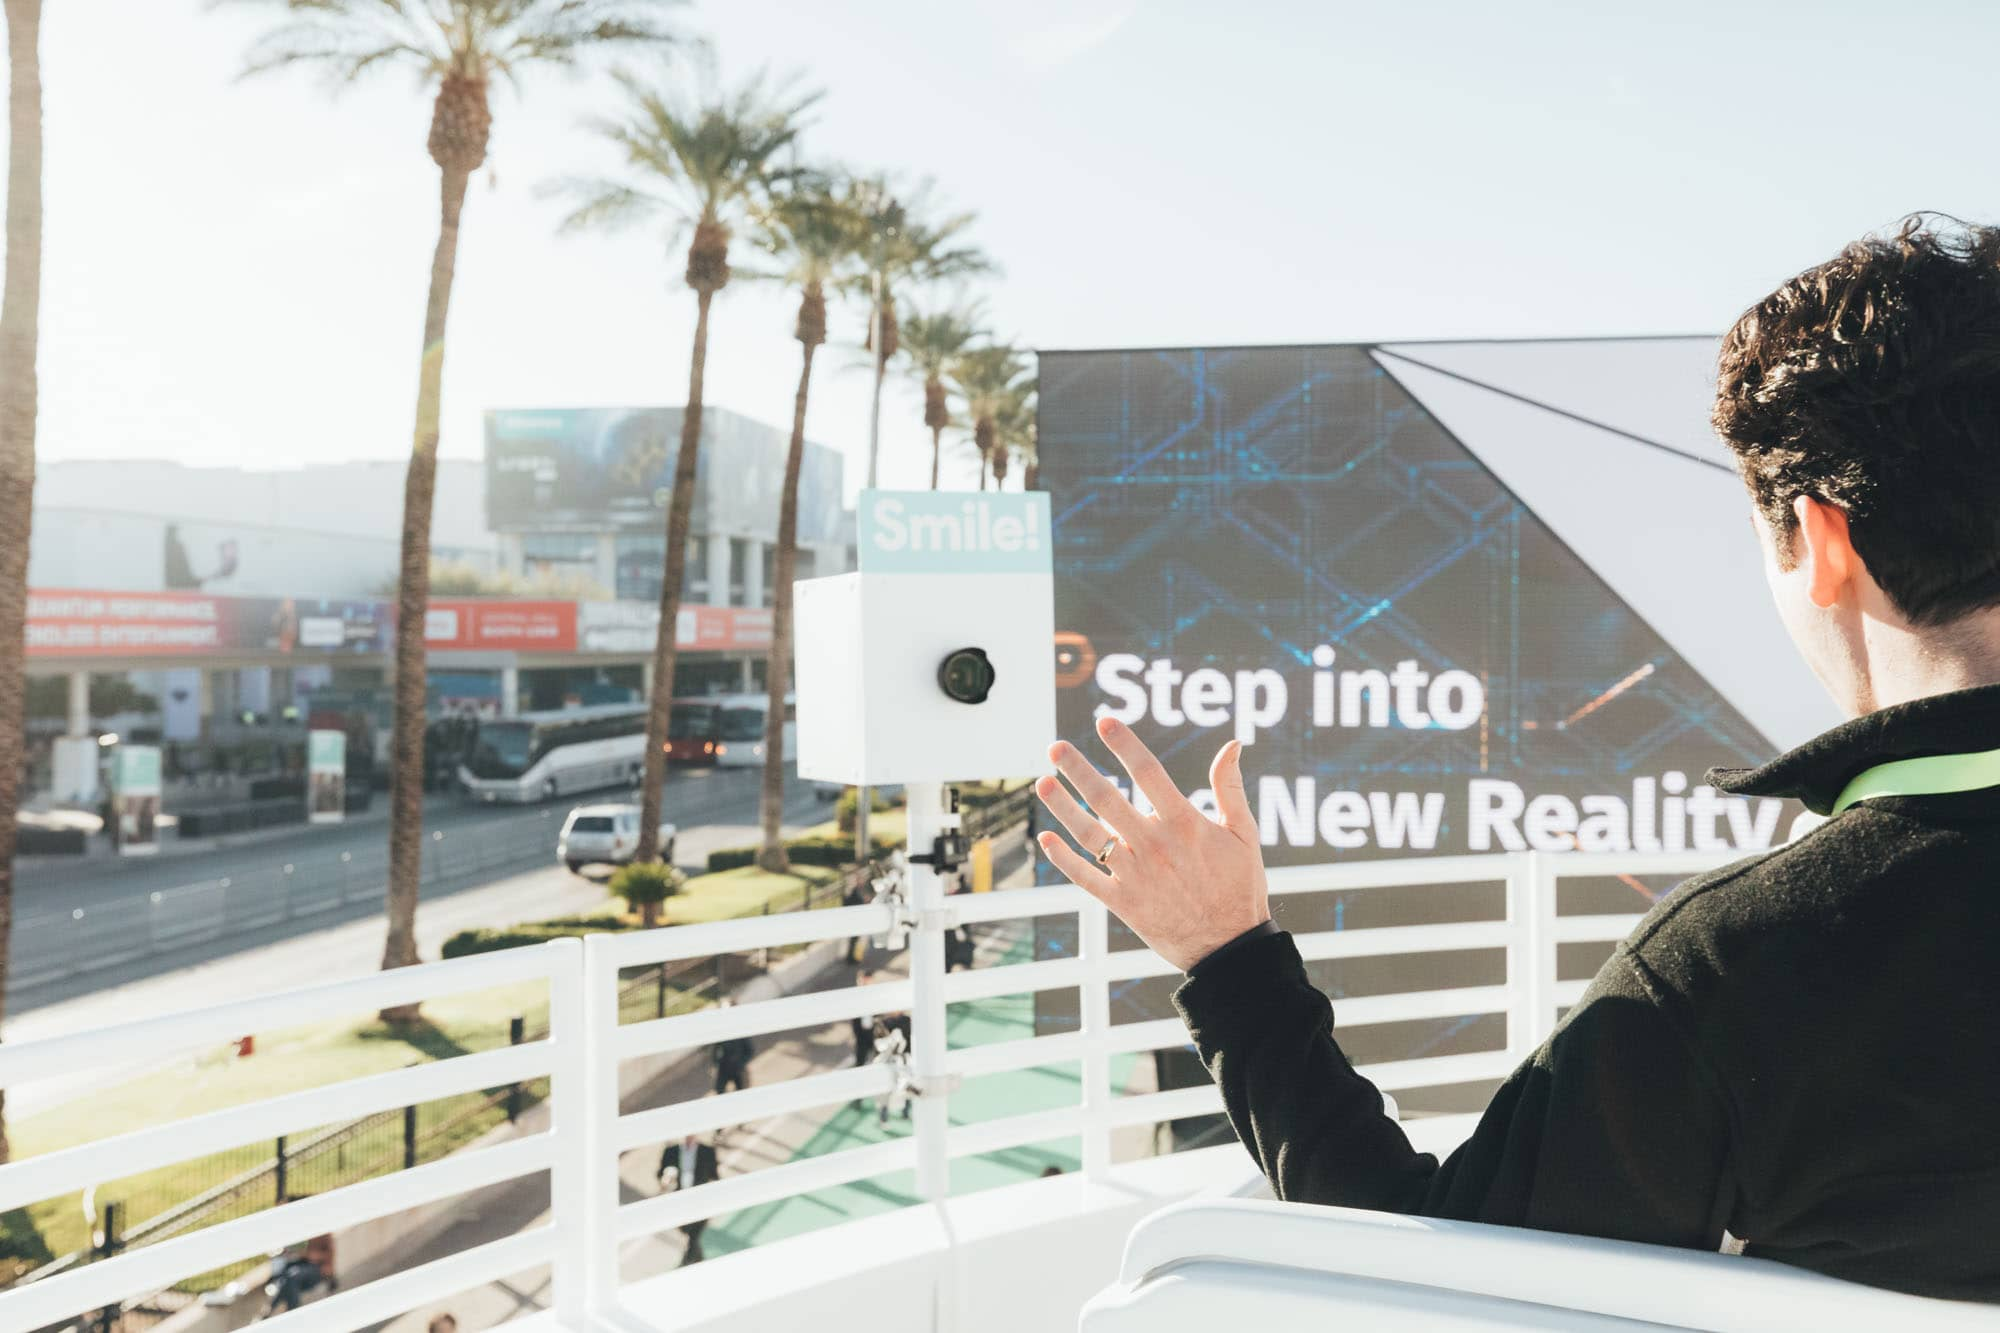 CES Roller Coaster Experience